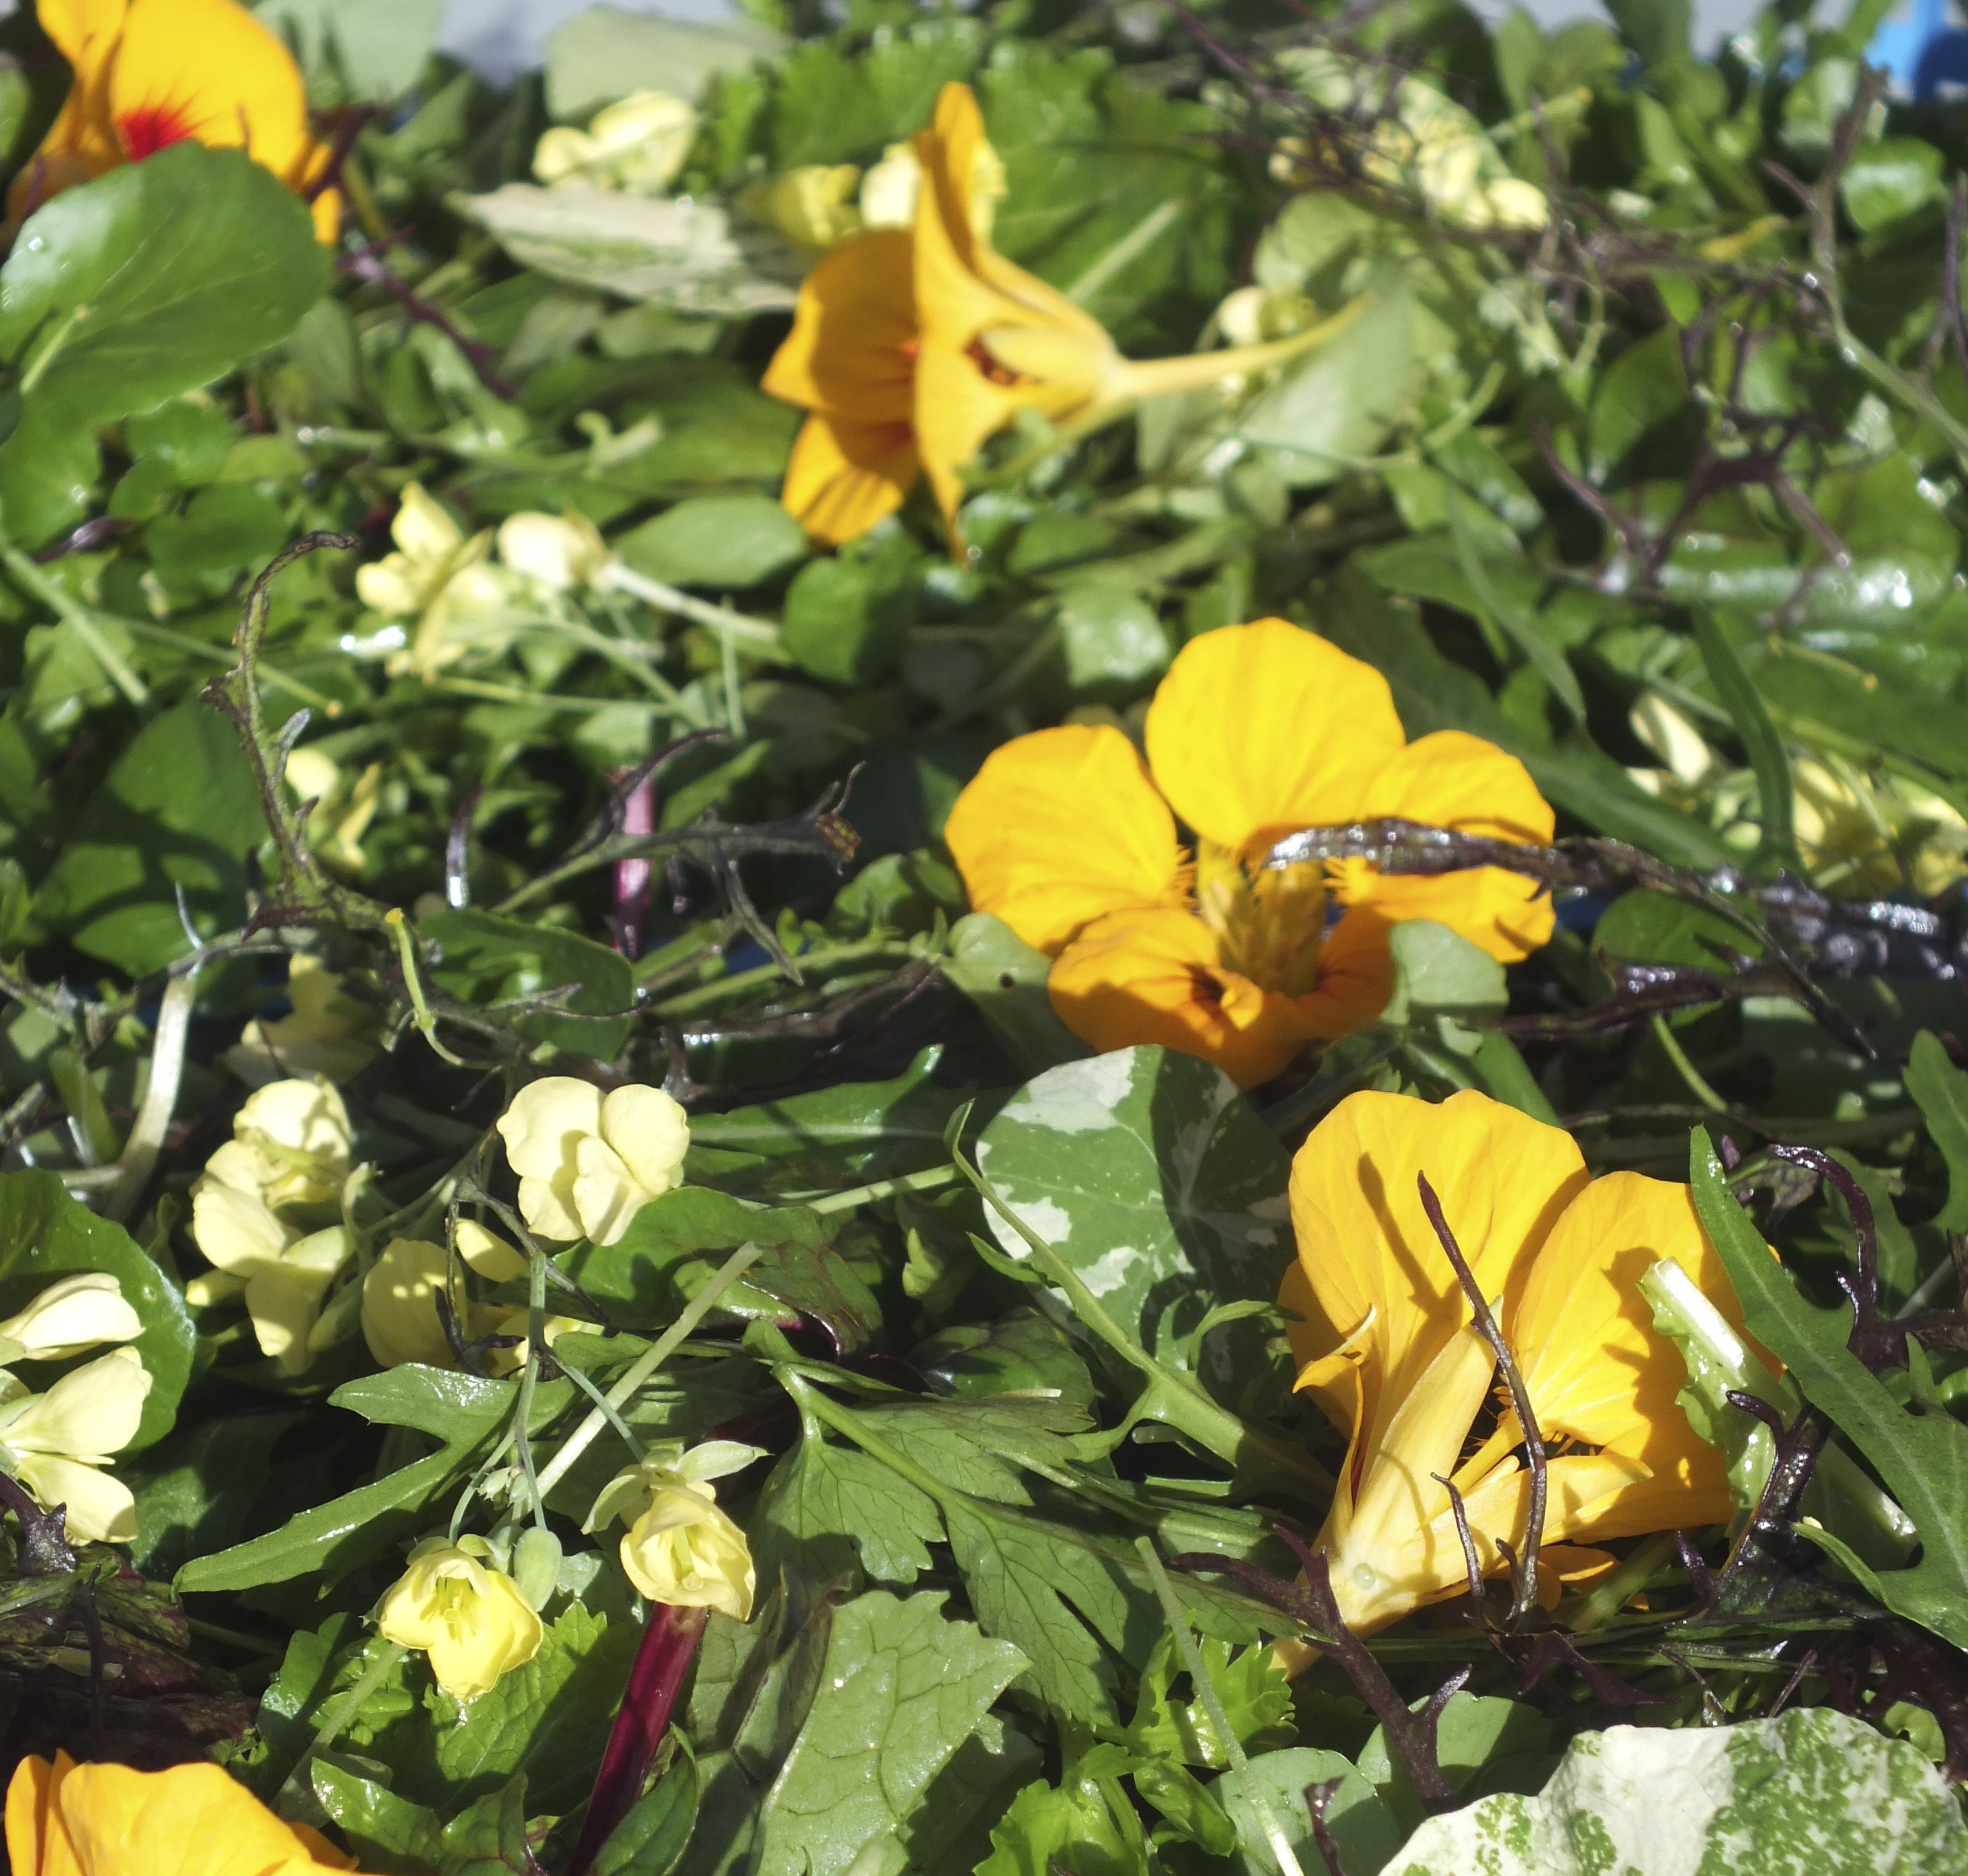 Wild Rocket Flowers With Nasturtiums In A Spicy Salad From Maddocks